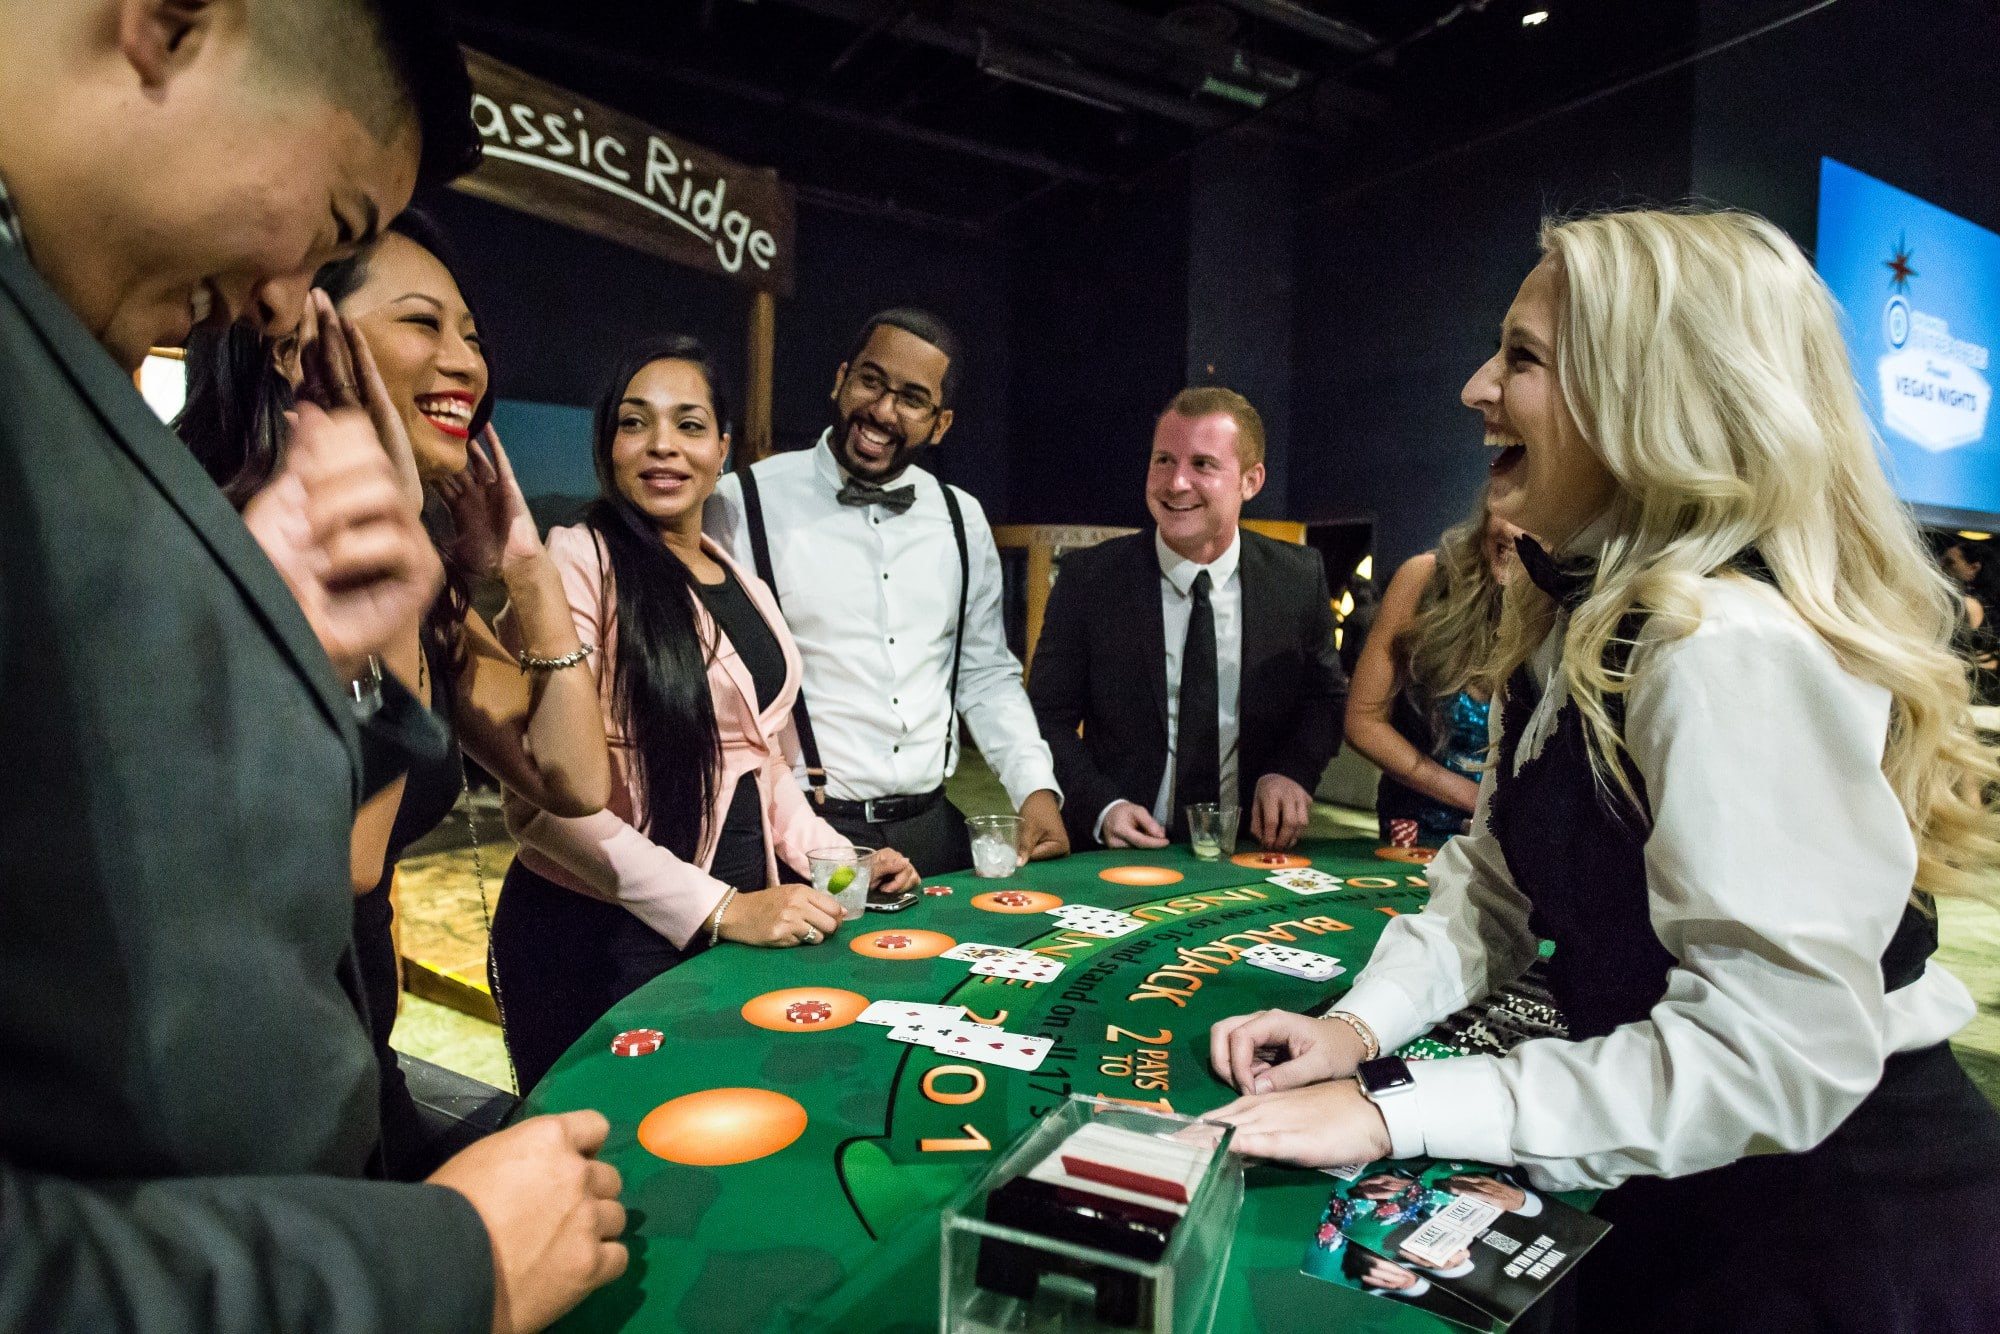 dealer and guests laughing at blackjack table